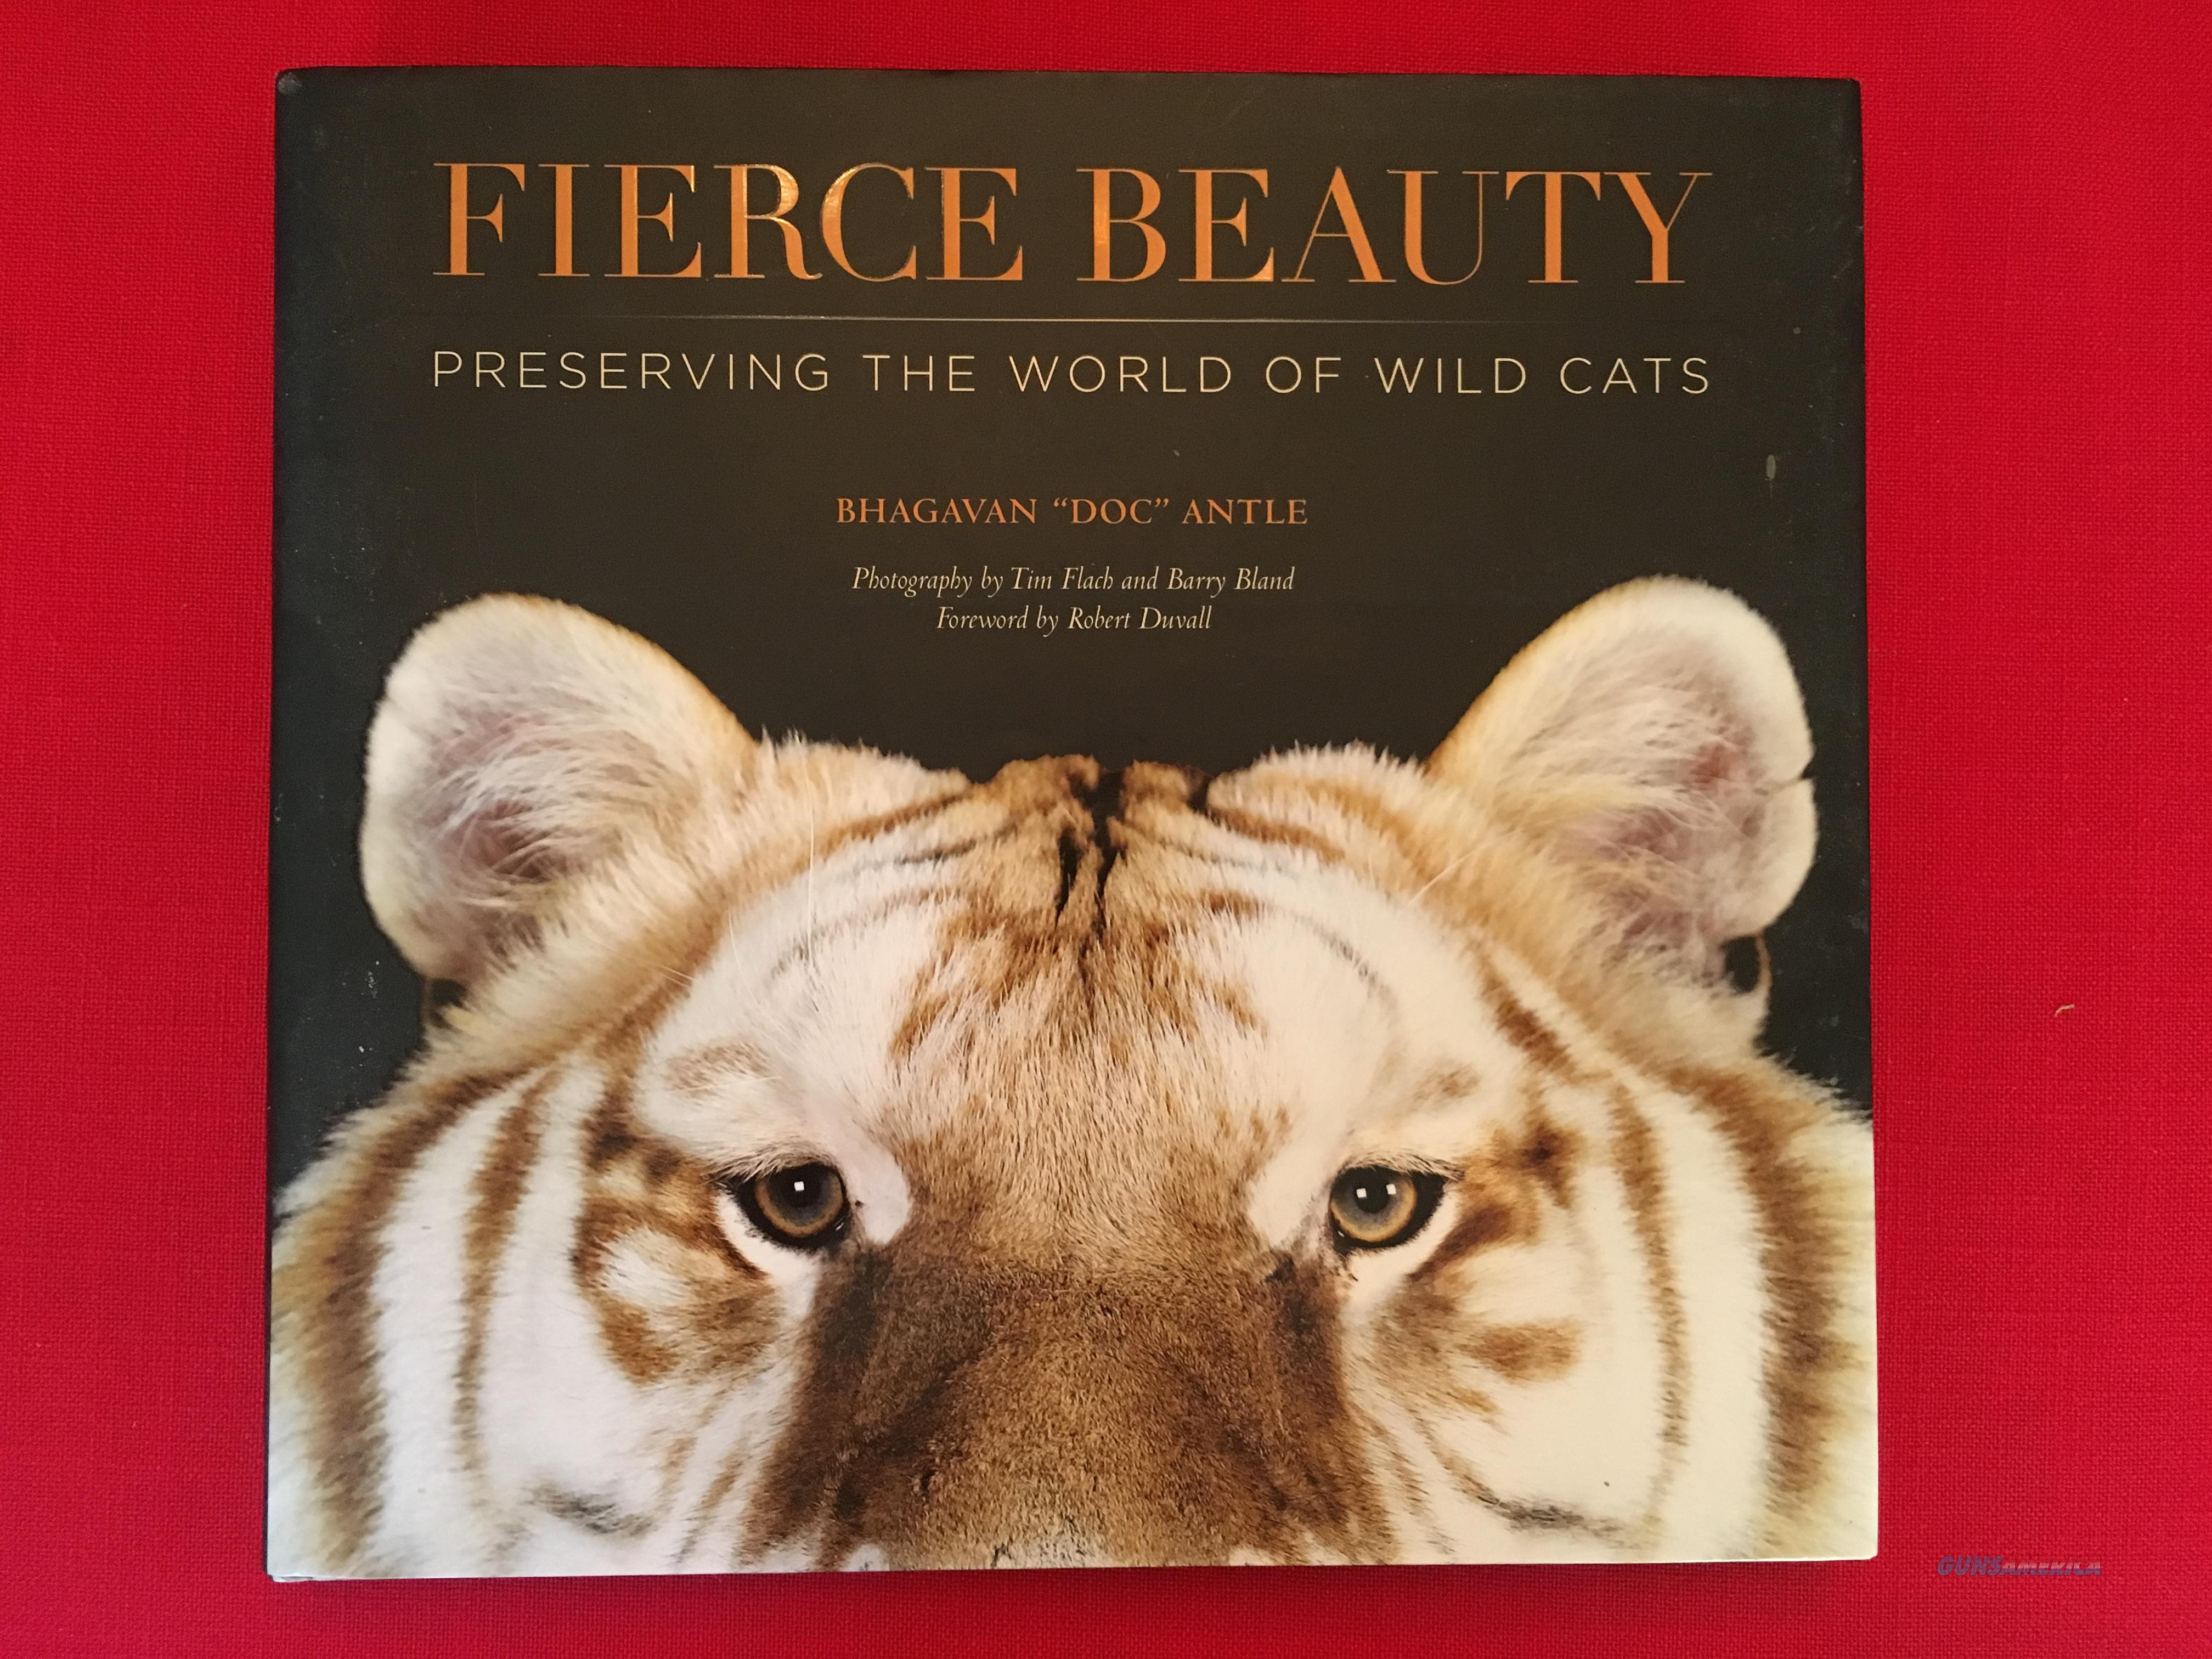 Fierce Beauty: Preserving the World of Wild Cats by Bhagavan Antle  Non-Guns > Books & Magazines